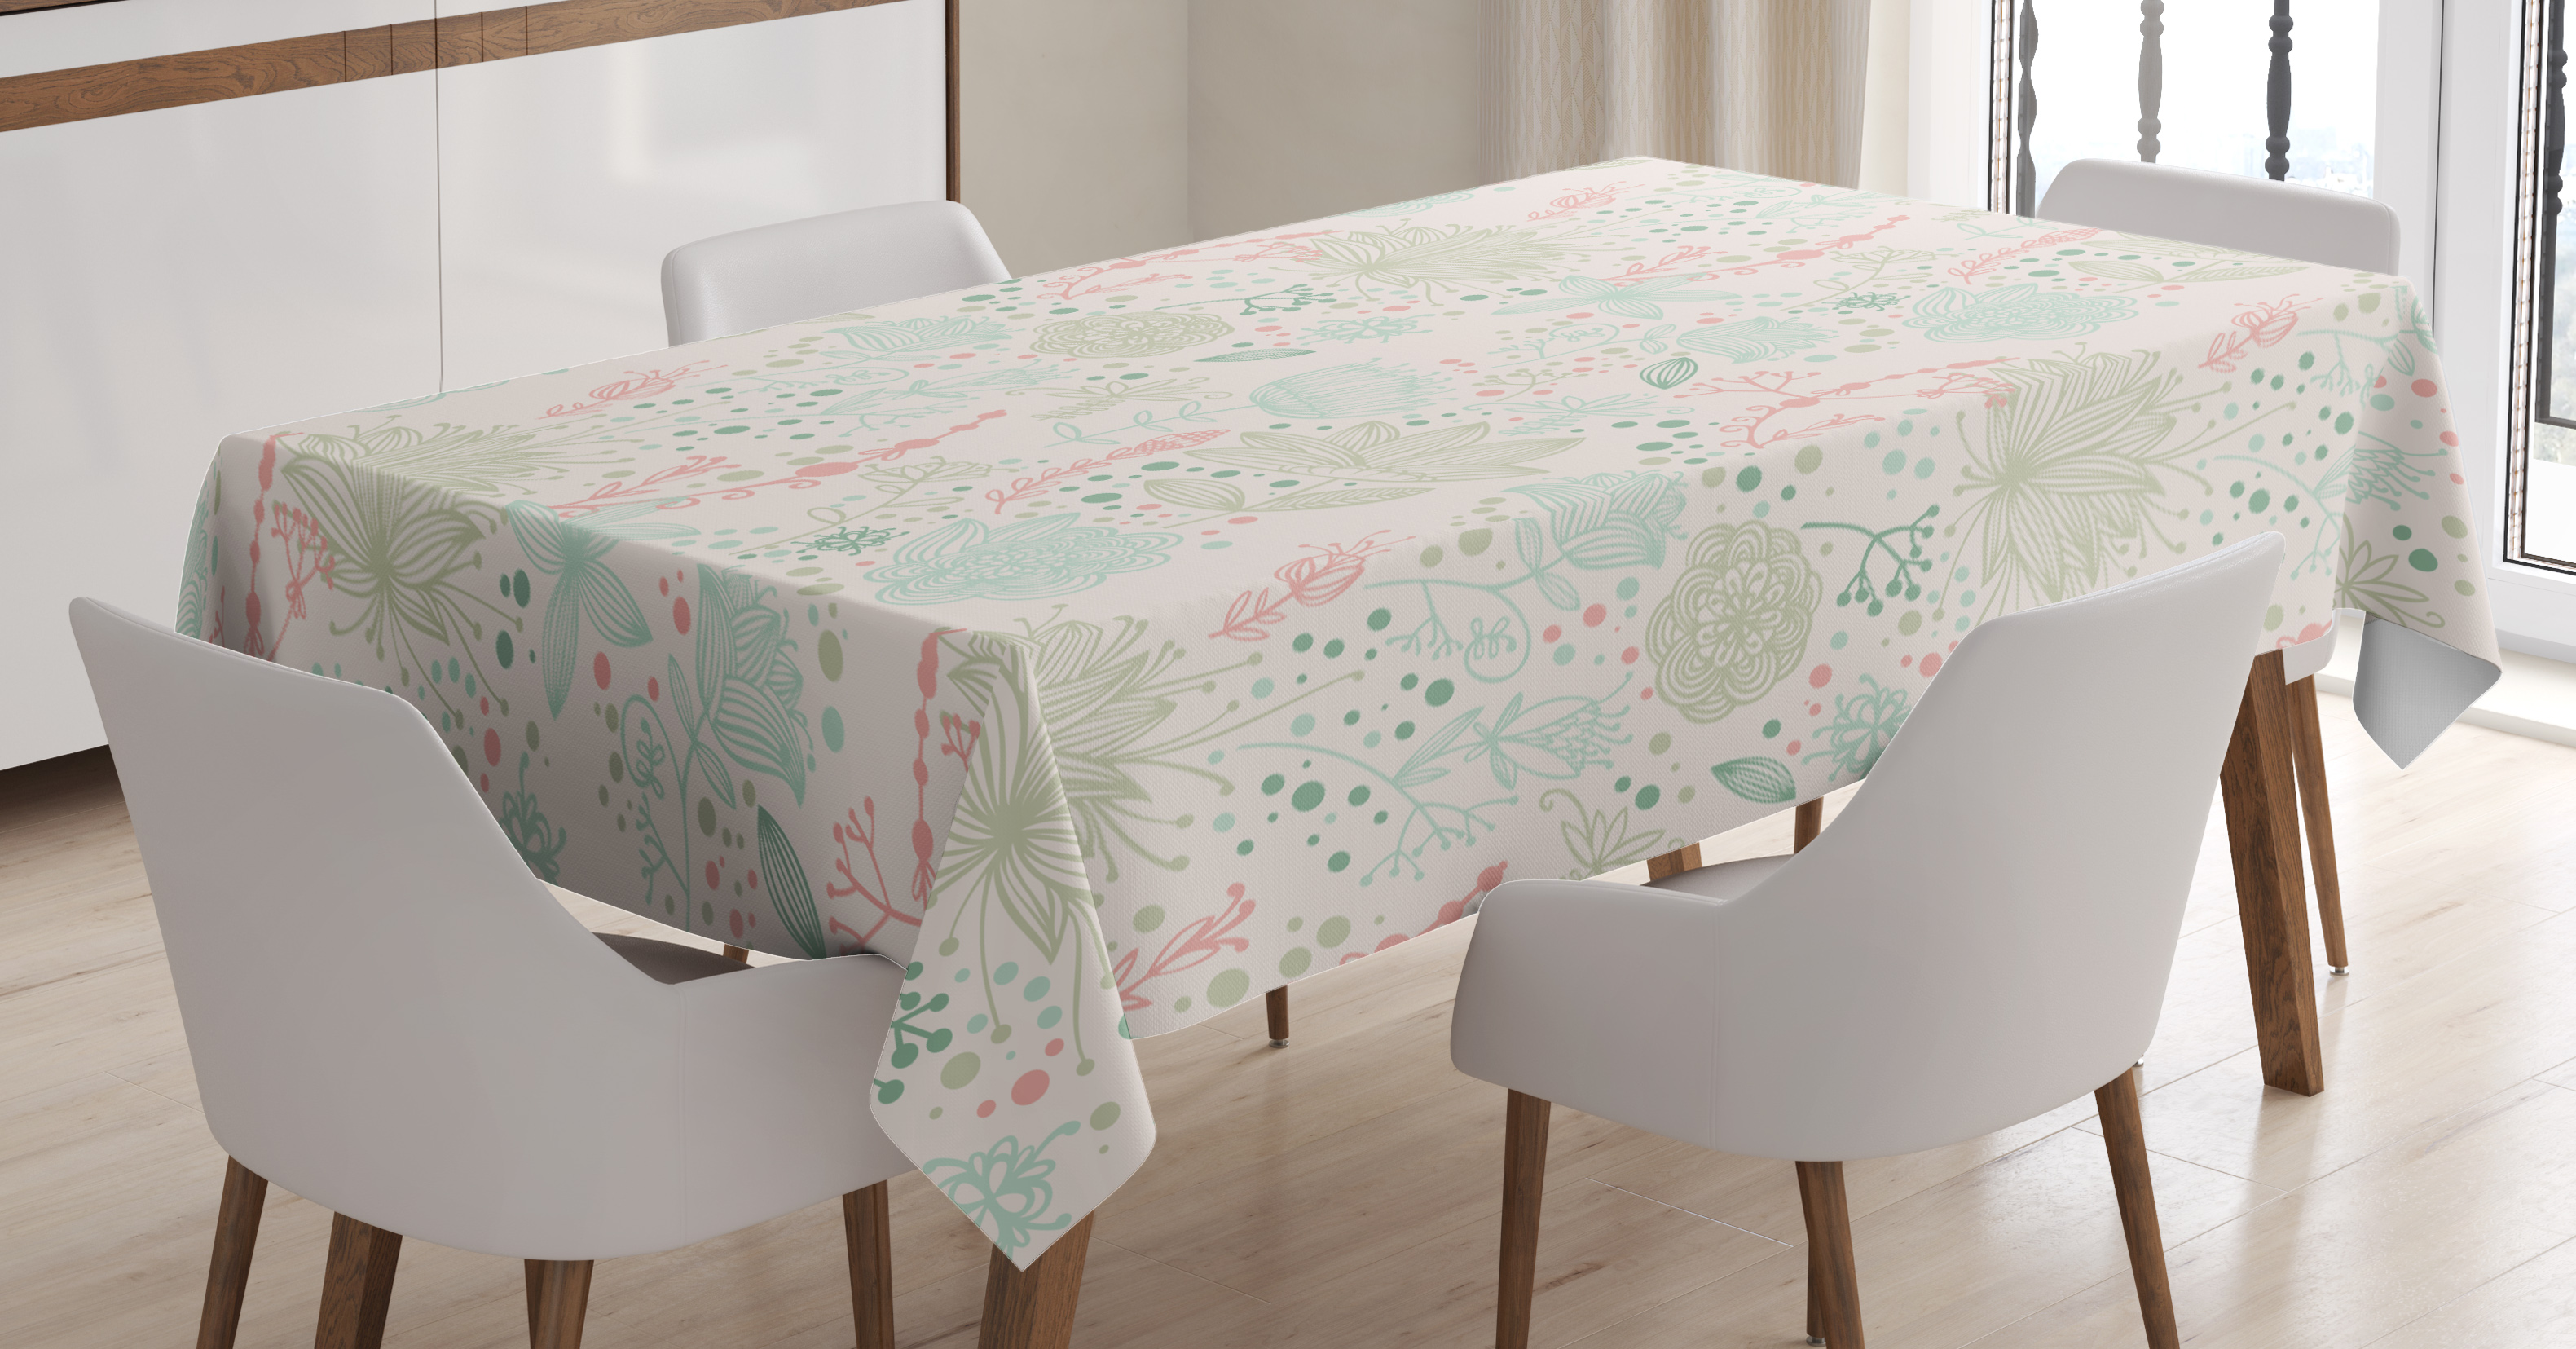 Floral Tablecloth, Vintage Soft Floral With Dotted Background Nature  Inspiration Image, Rectangular Table Cover